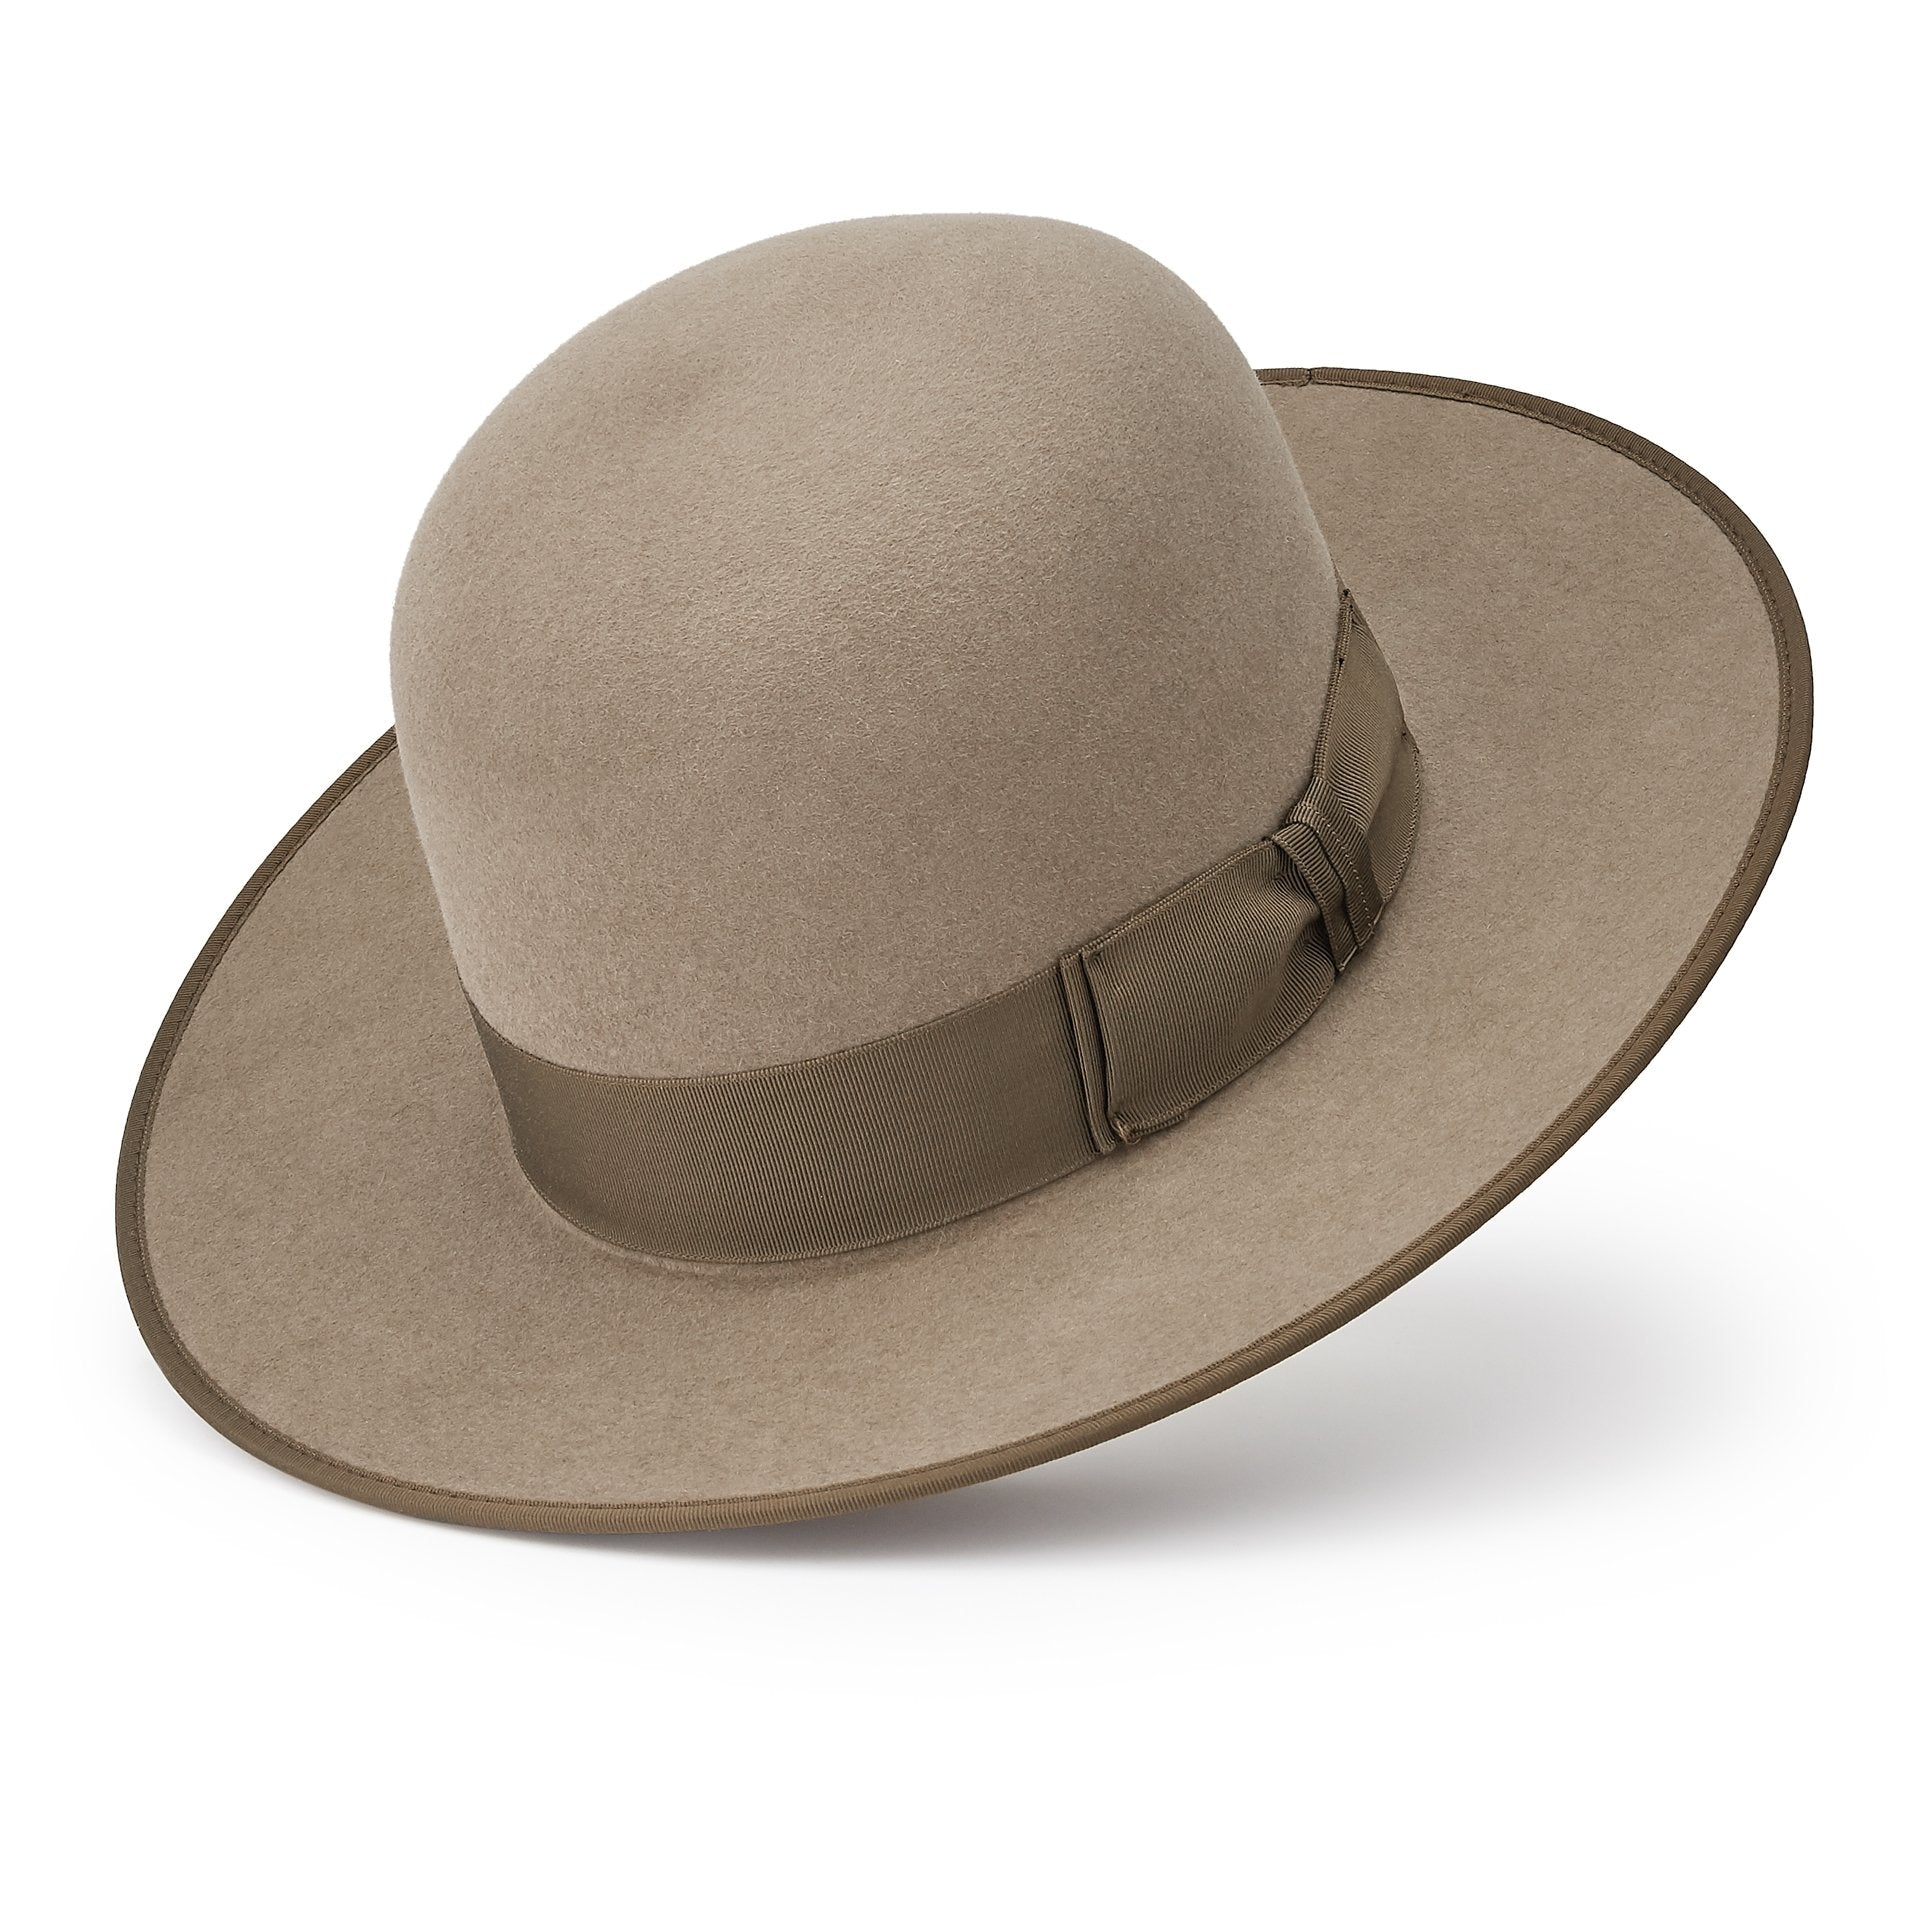 Piccadilly fedora - Fedoras & homburgs - Lock & Co. Hatters London UK